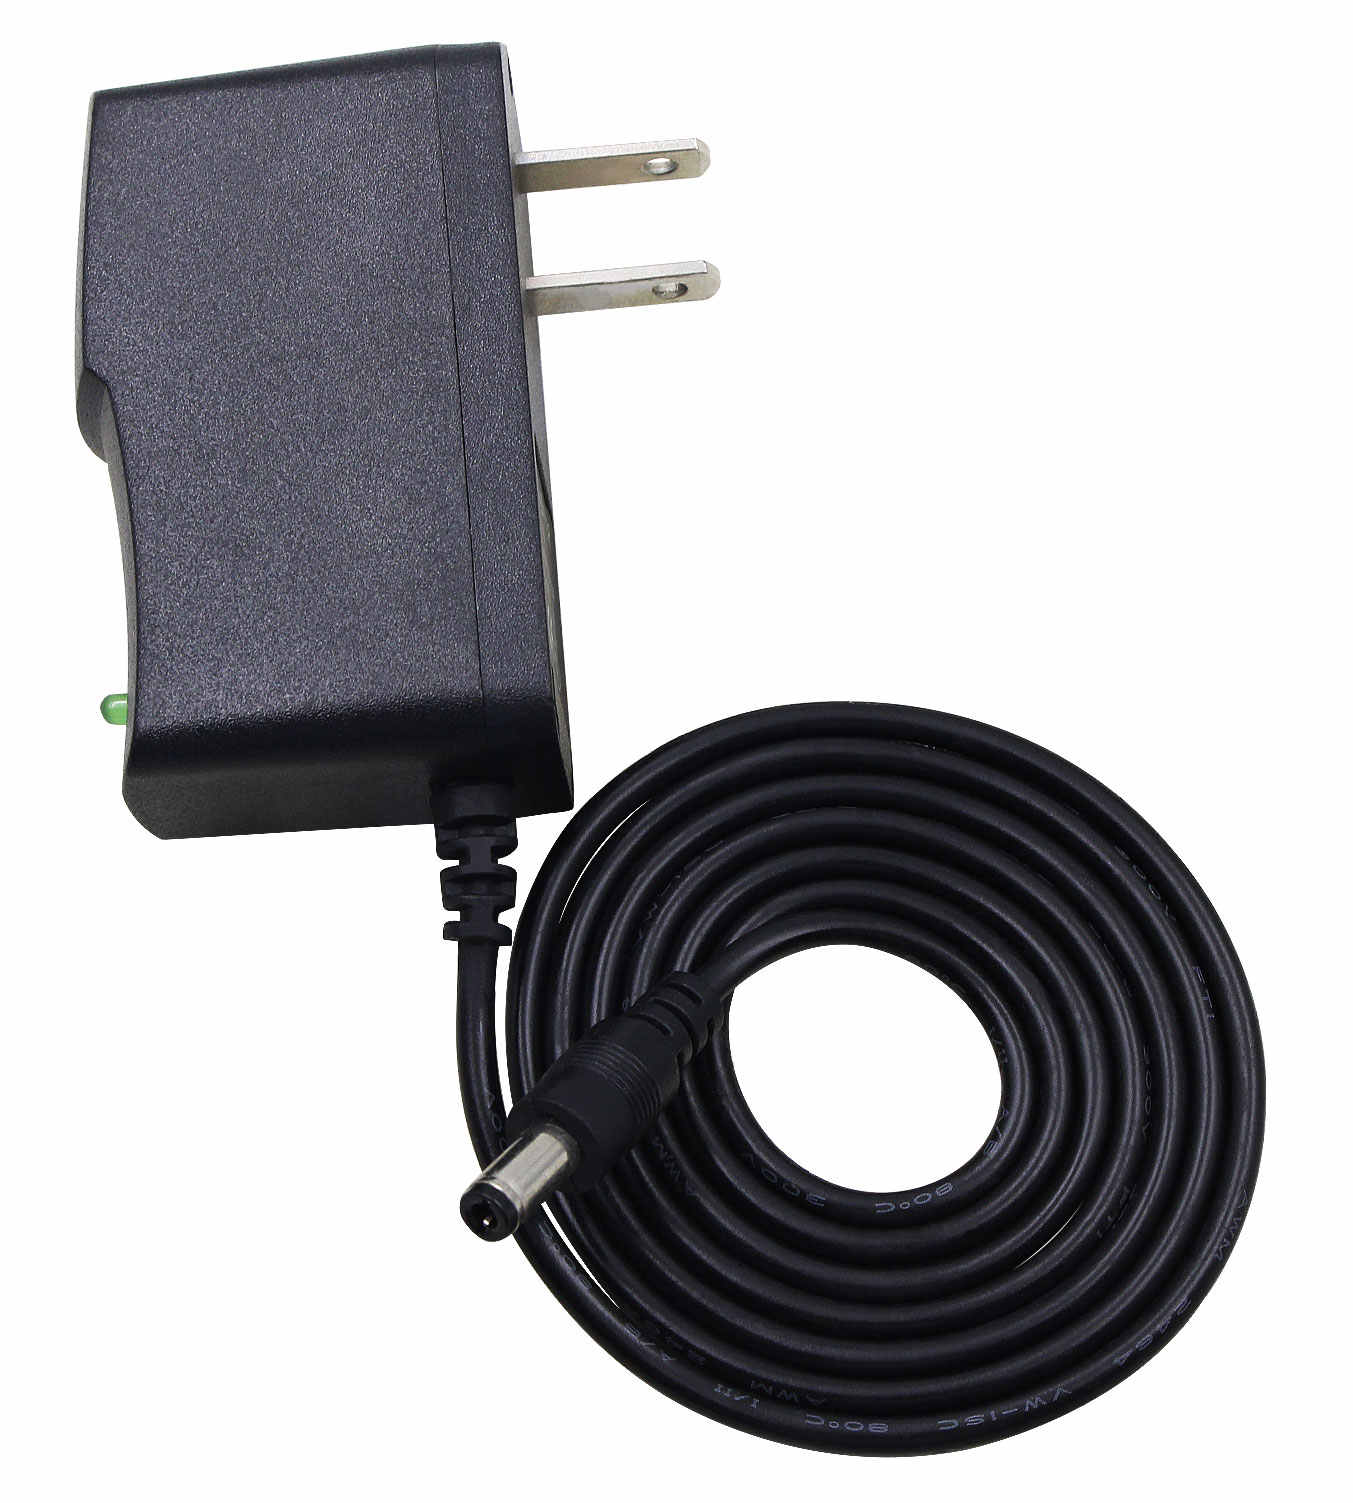 BELKIN N600 DB ADAPTER DRIVERS FOR WINDOWS 8